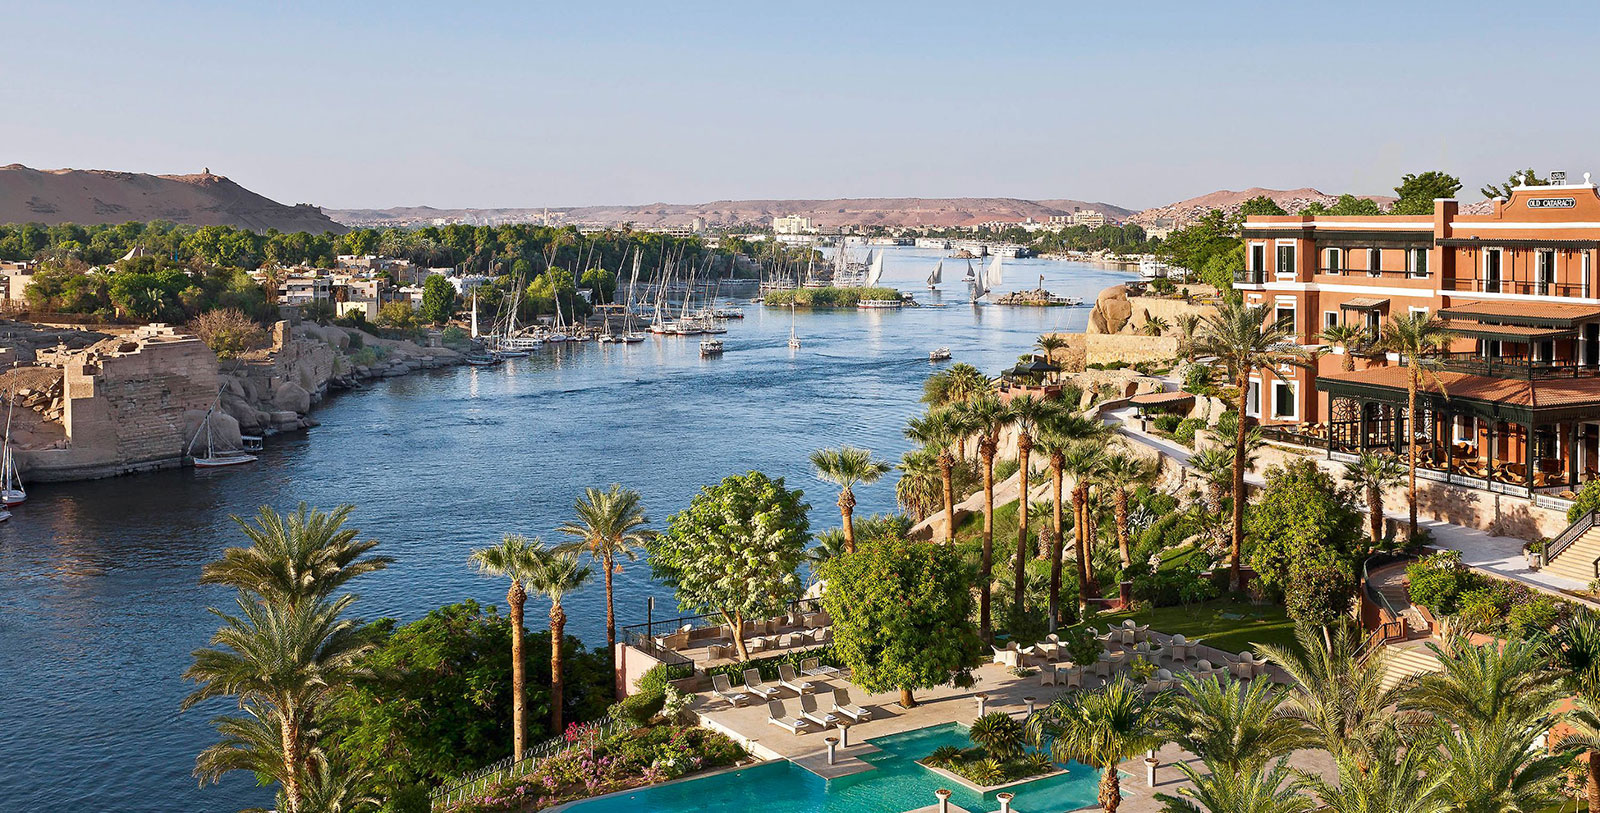 Image of Exterior Aerial View Sofitel Legend Old Cataract Aswan Egypt